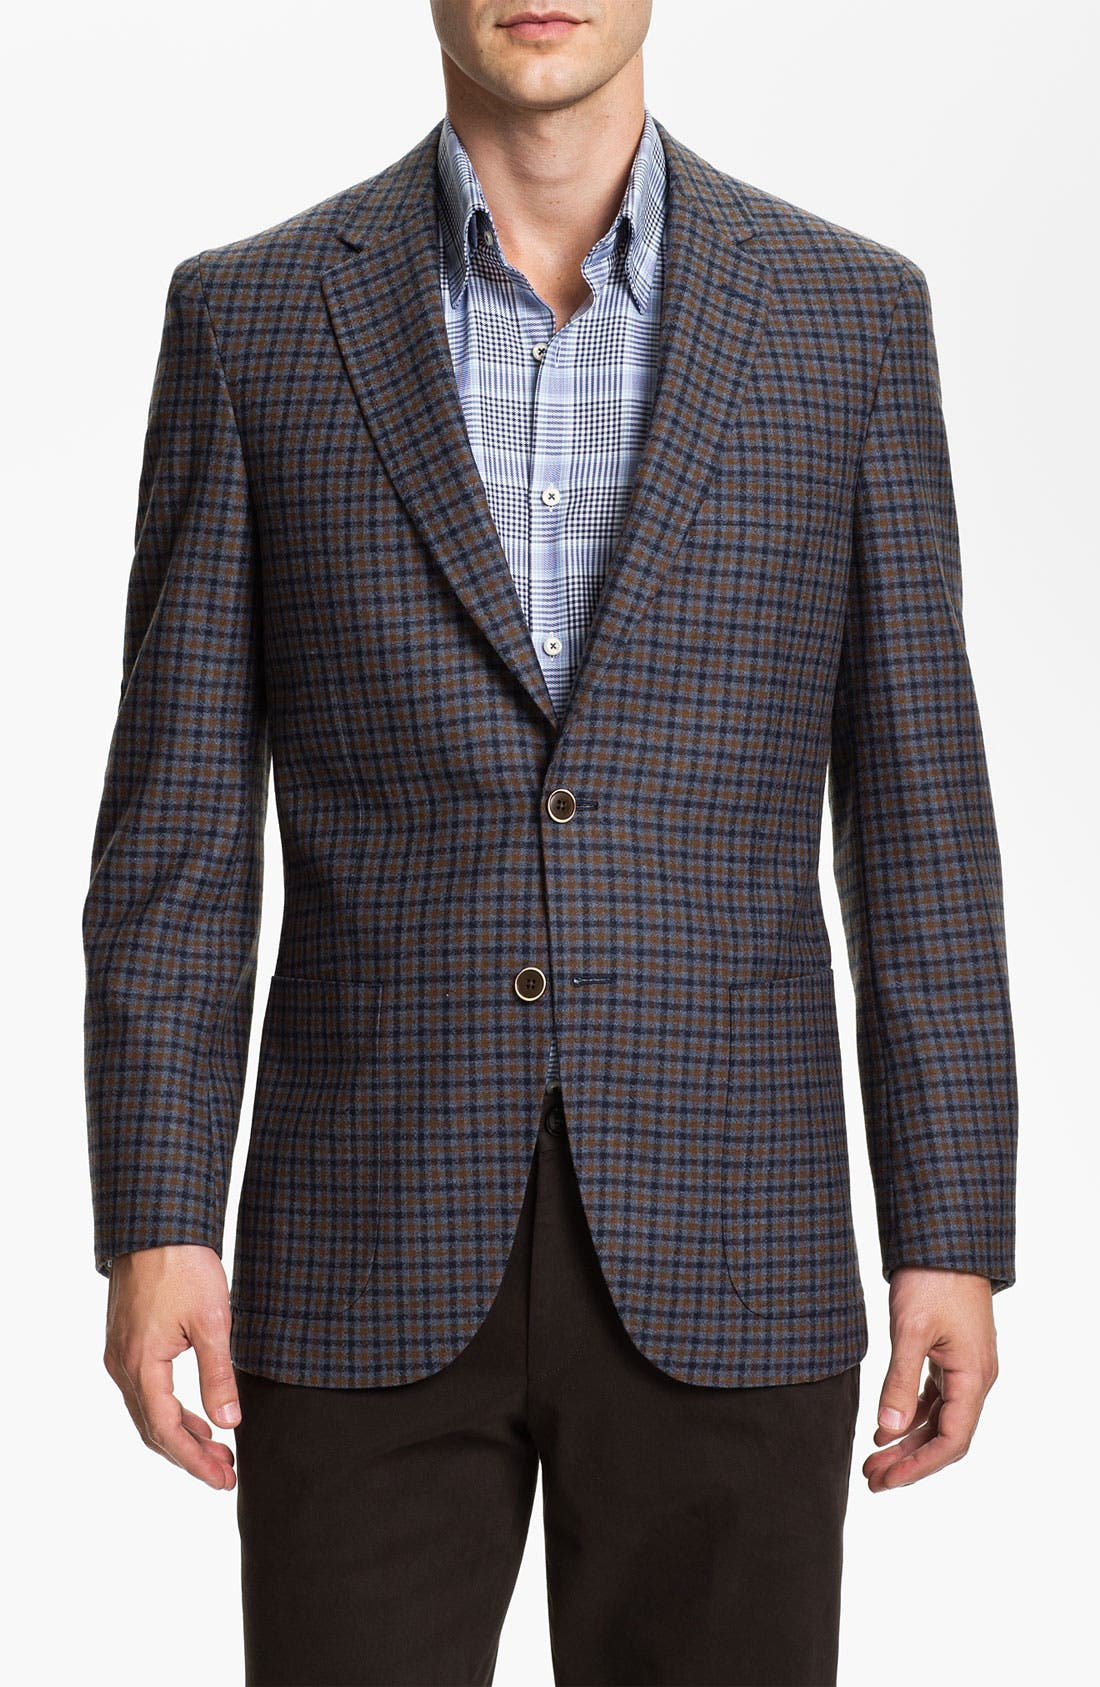 Main Image - Peter Millar Wool & Cashmere Sportcoat